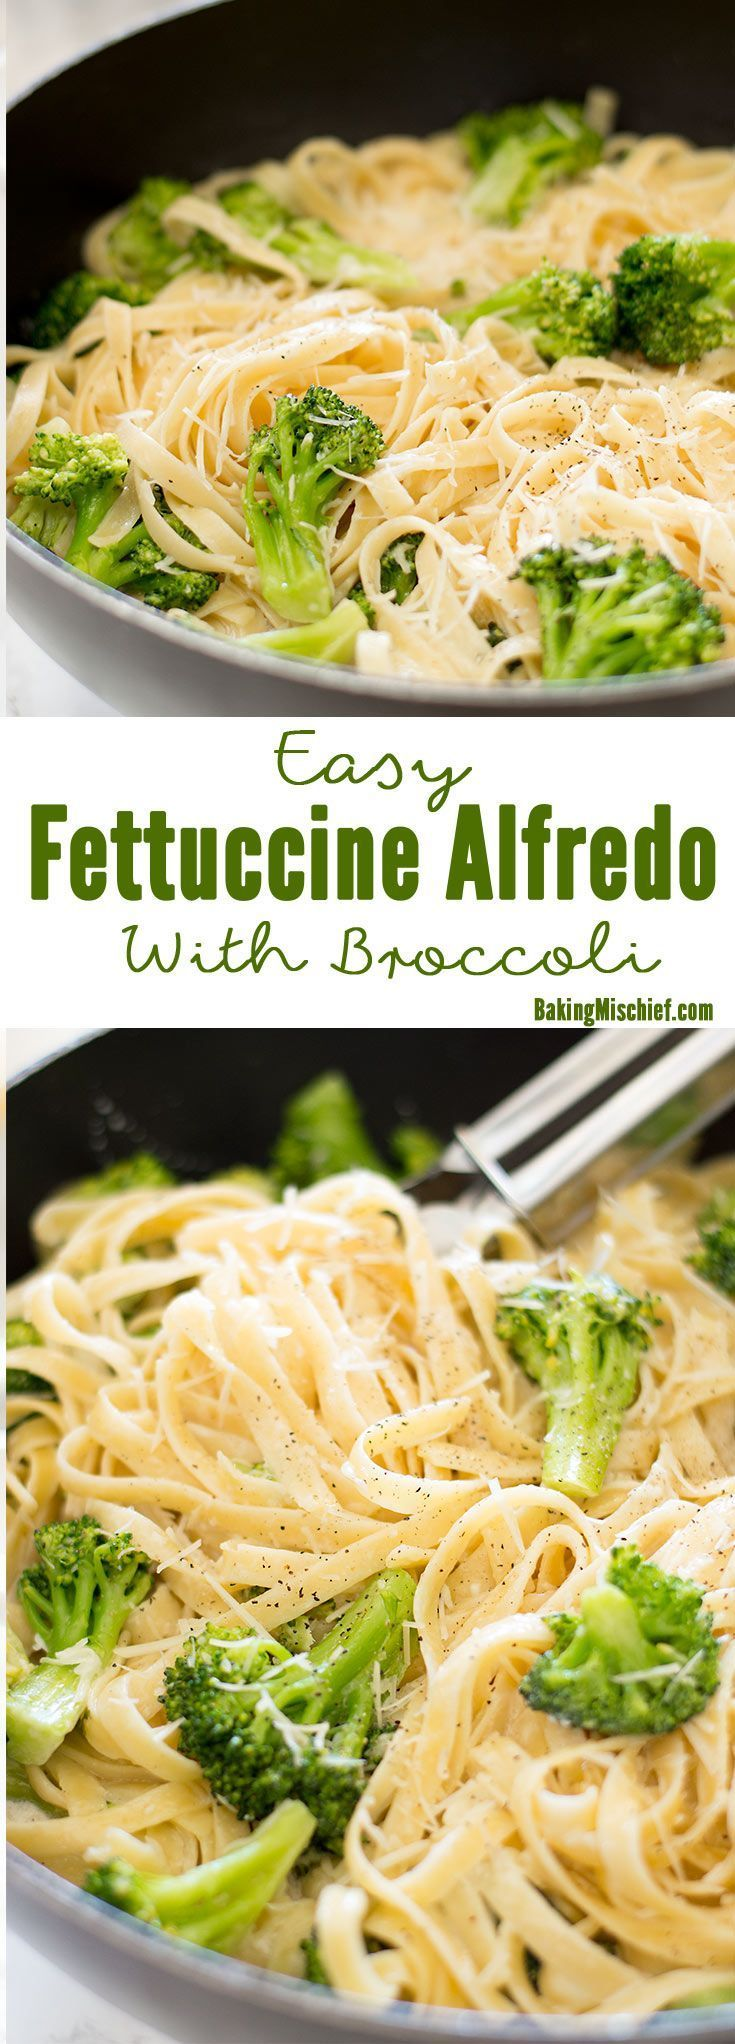 A quick and easy vegetarian dish for busy Meatless Mondays, full of broccoli and cheesy Alfredo goodness! Recipe includes nutritional information, recipe for two and make-ahead instructions. From http://BakingMischief.com